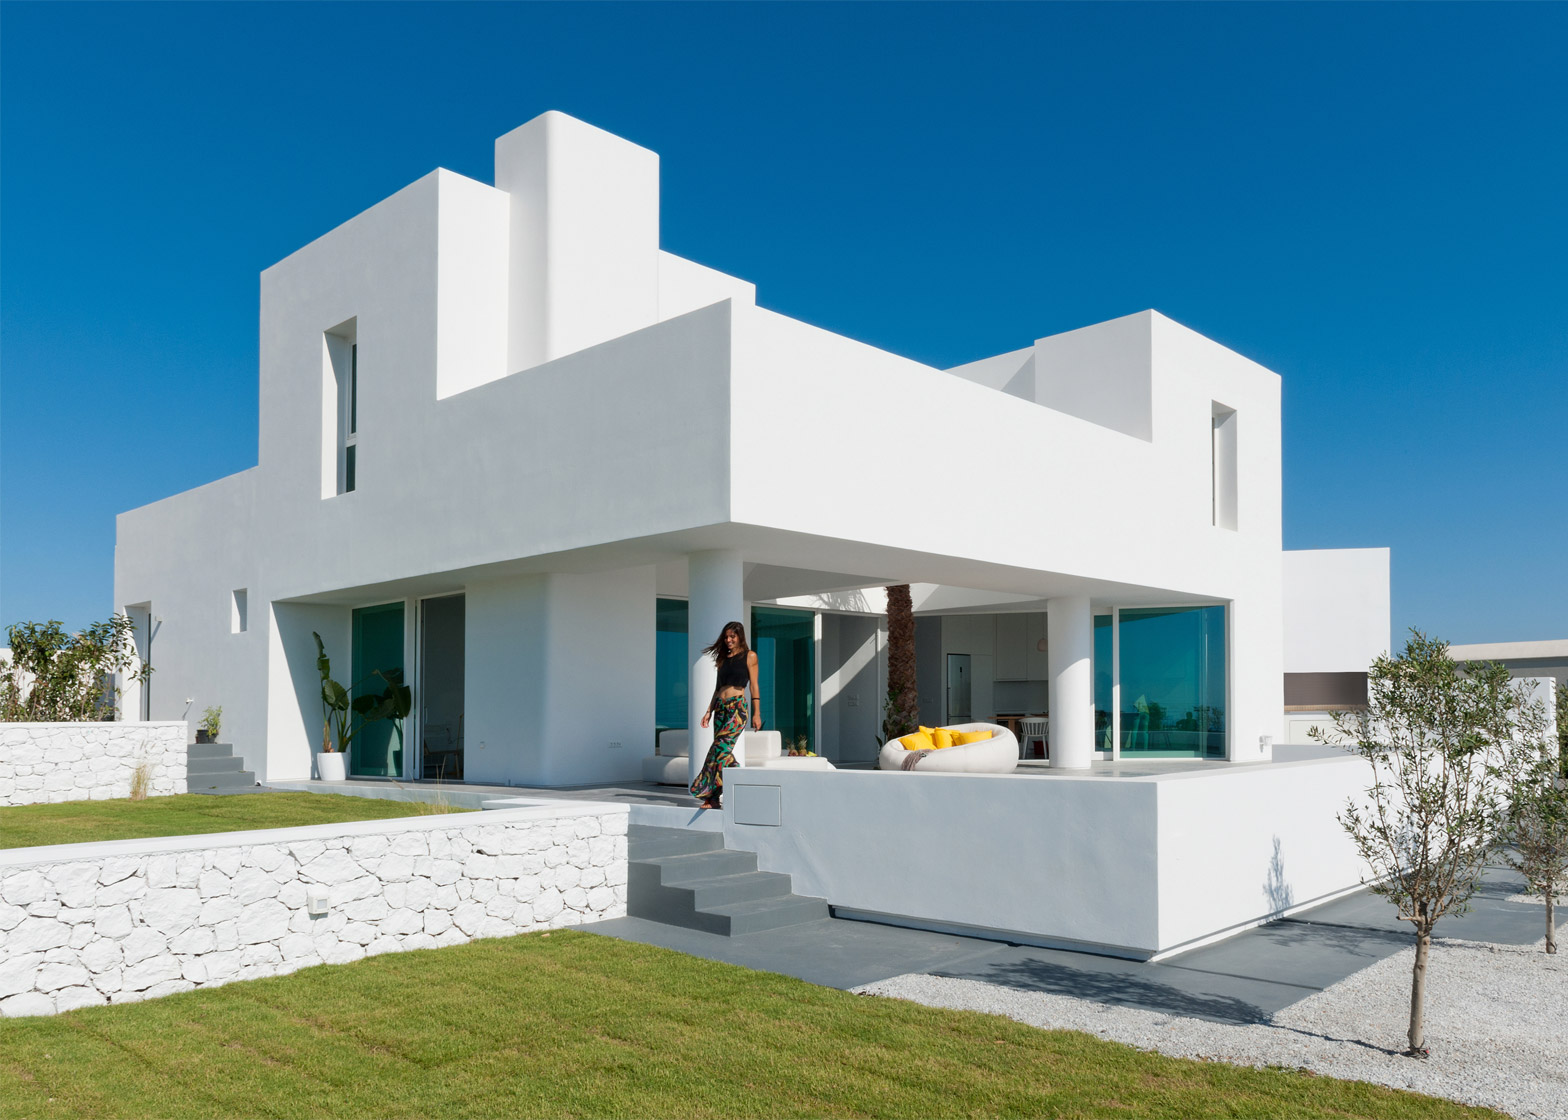 House Architects santorini housekapsimalis architects made of white blocks